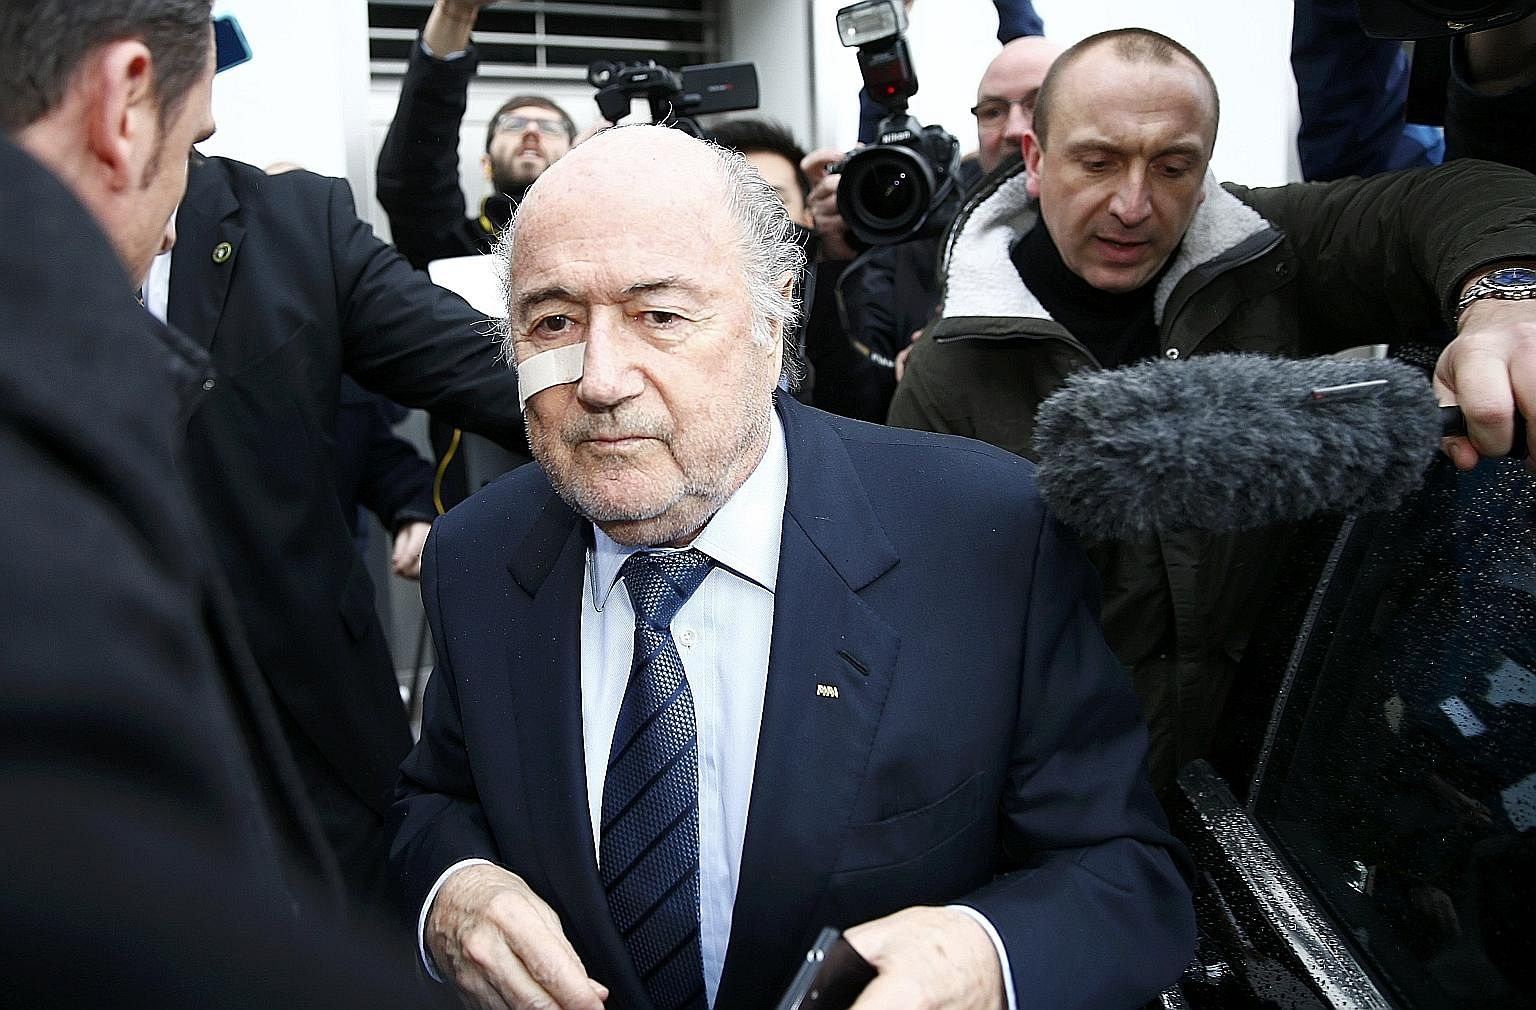 Disgraced former Fifa president Sepp Blatter may have been ousted from his seat at the top of football's governing body, but all five of his potential successors have also been part of a corrupt system that has eschewed transparency from the public e